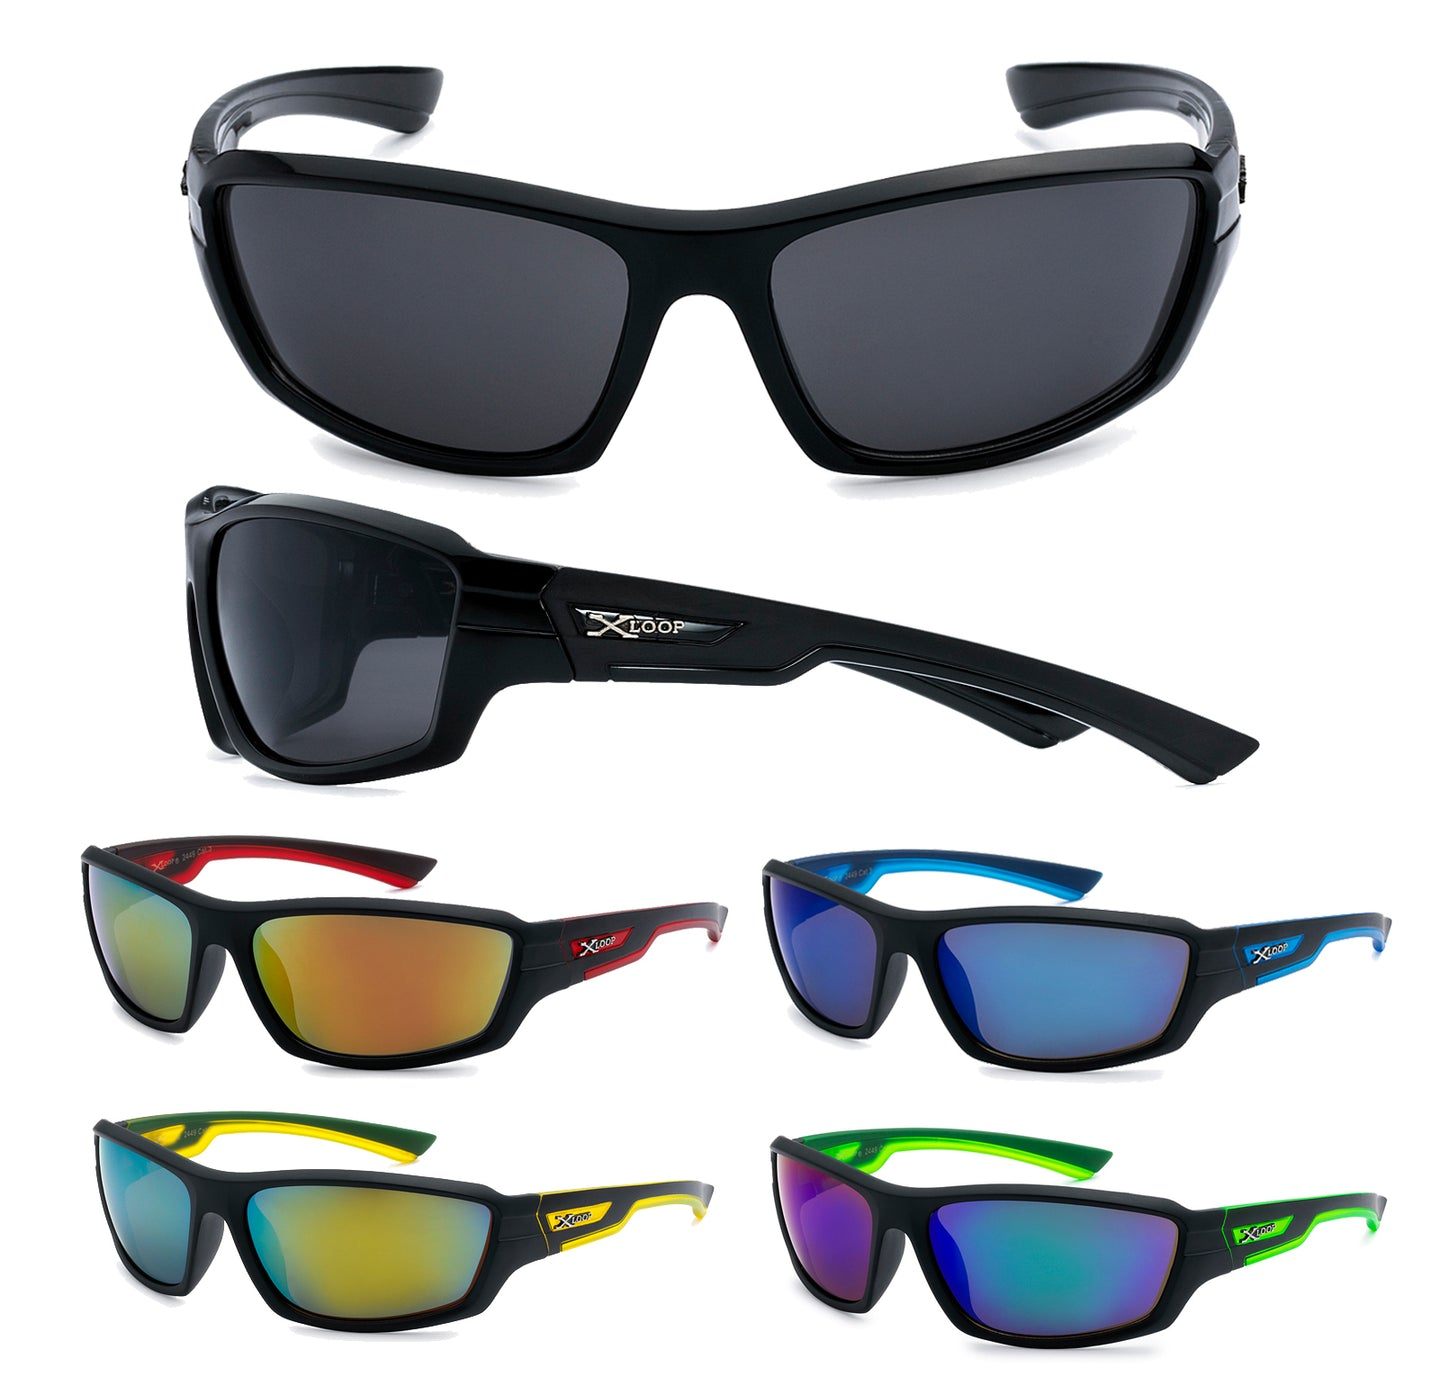 Mens Wholesale Xloop Revo Lens Sports Wrap Sunglasses 1 Dozen 8X2449 - BuyWholesaleSunglasses.com